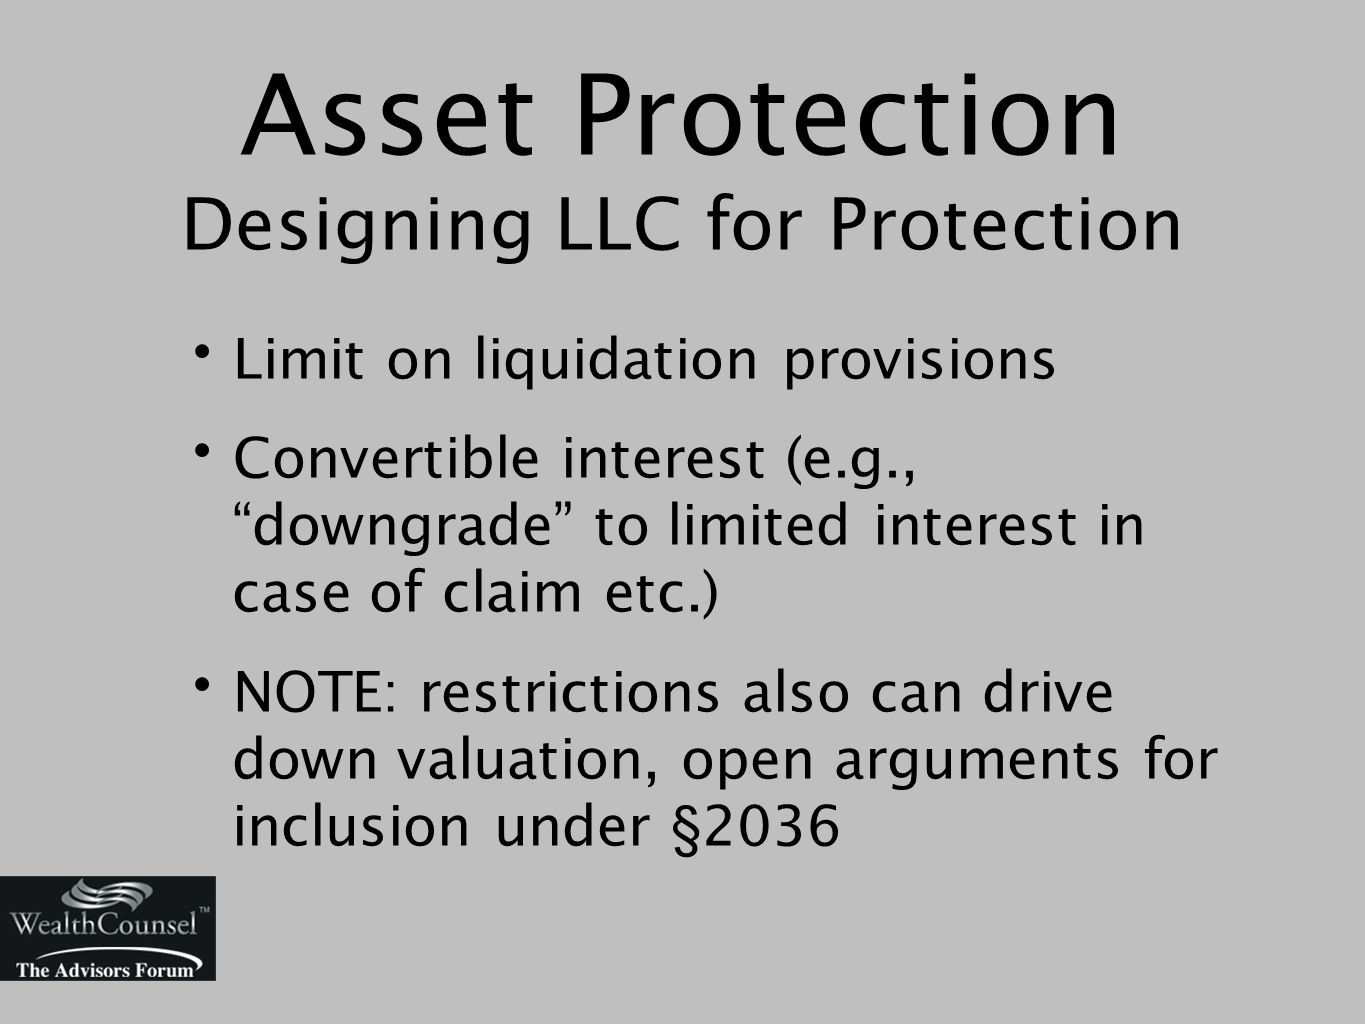 Asset Protection Designing LLC for Protection Limit on liquidation provisions Convertible interest (e.g., downgrade to limited interest in case of claim etc.) NOTE: restrictions also can drive down valuation, open arguments for inclusion under §2036